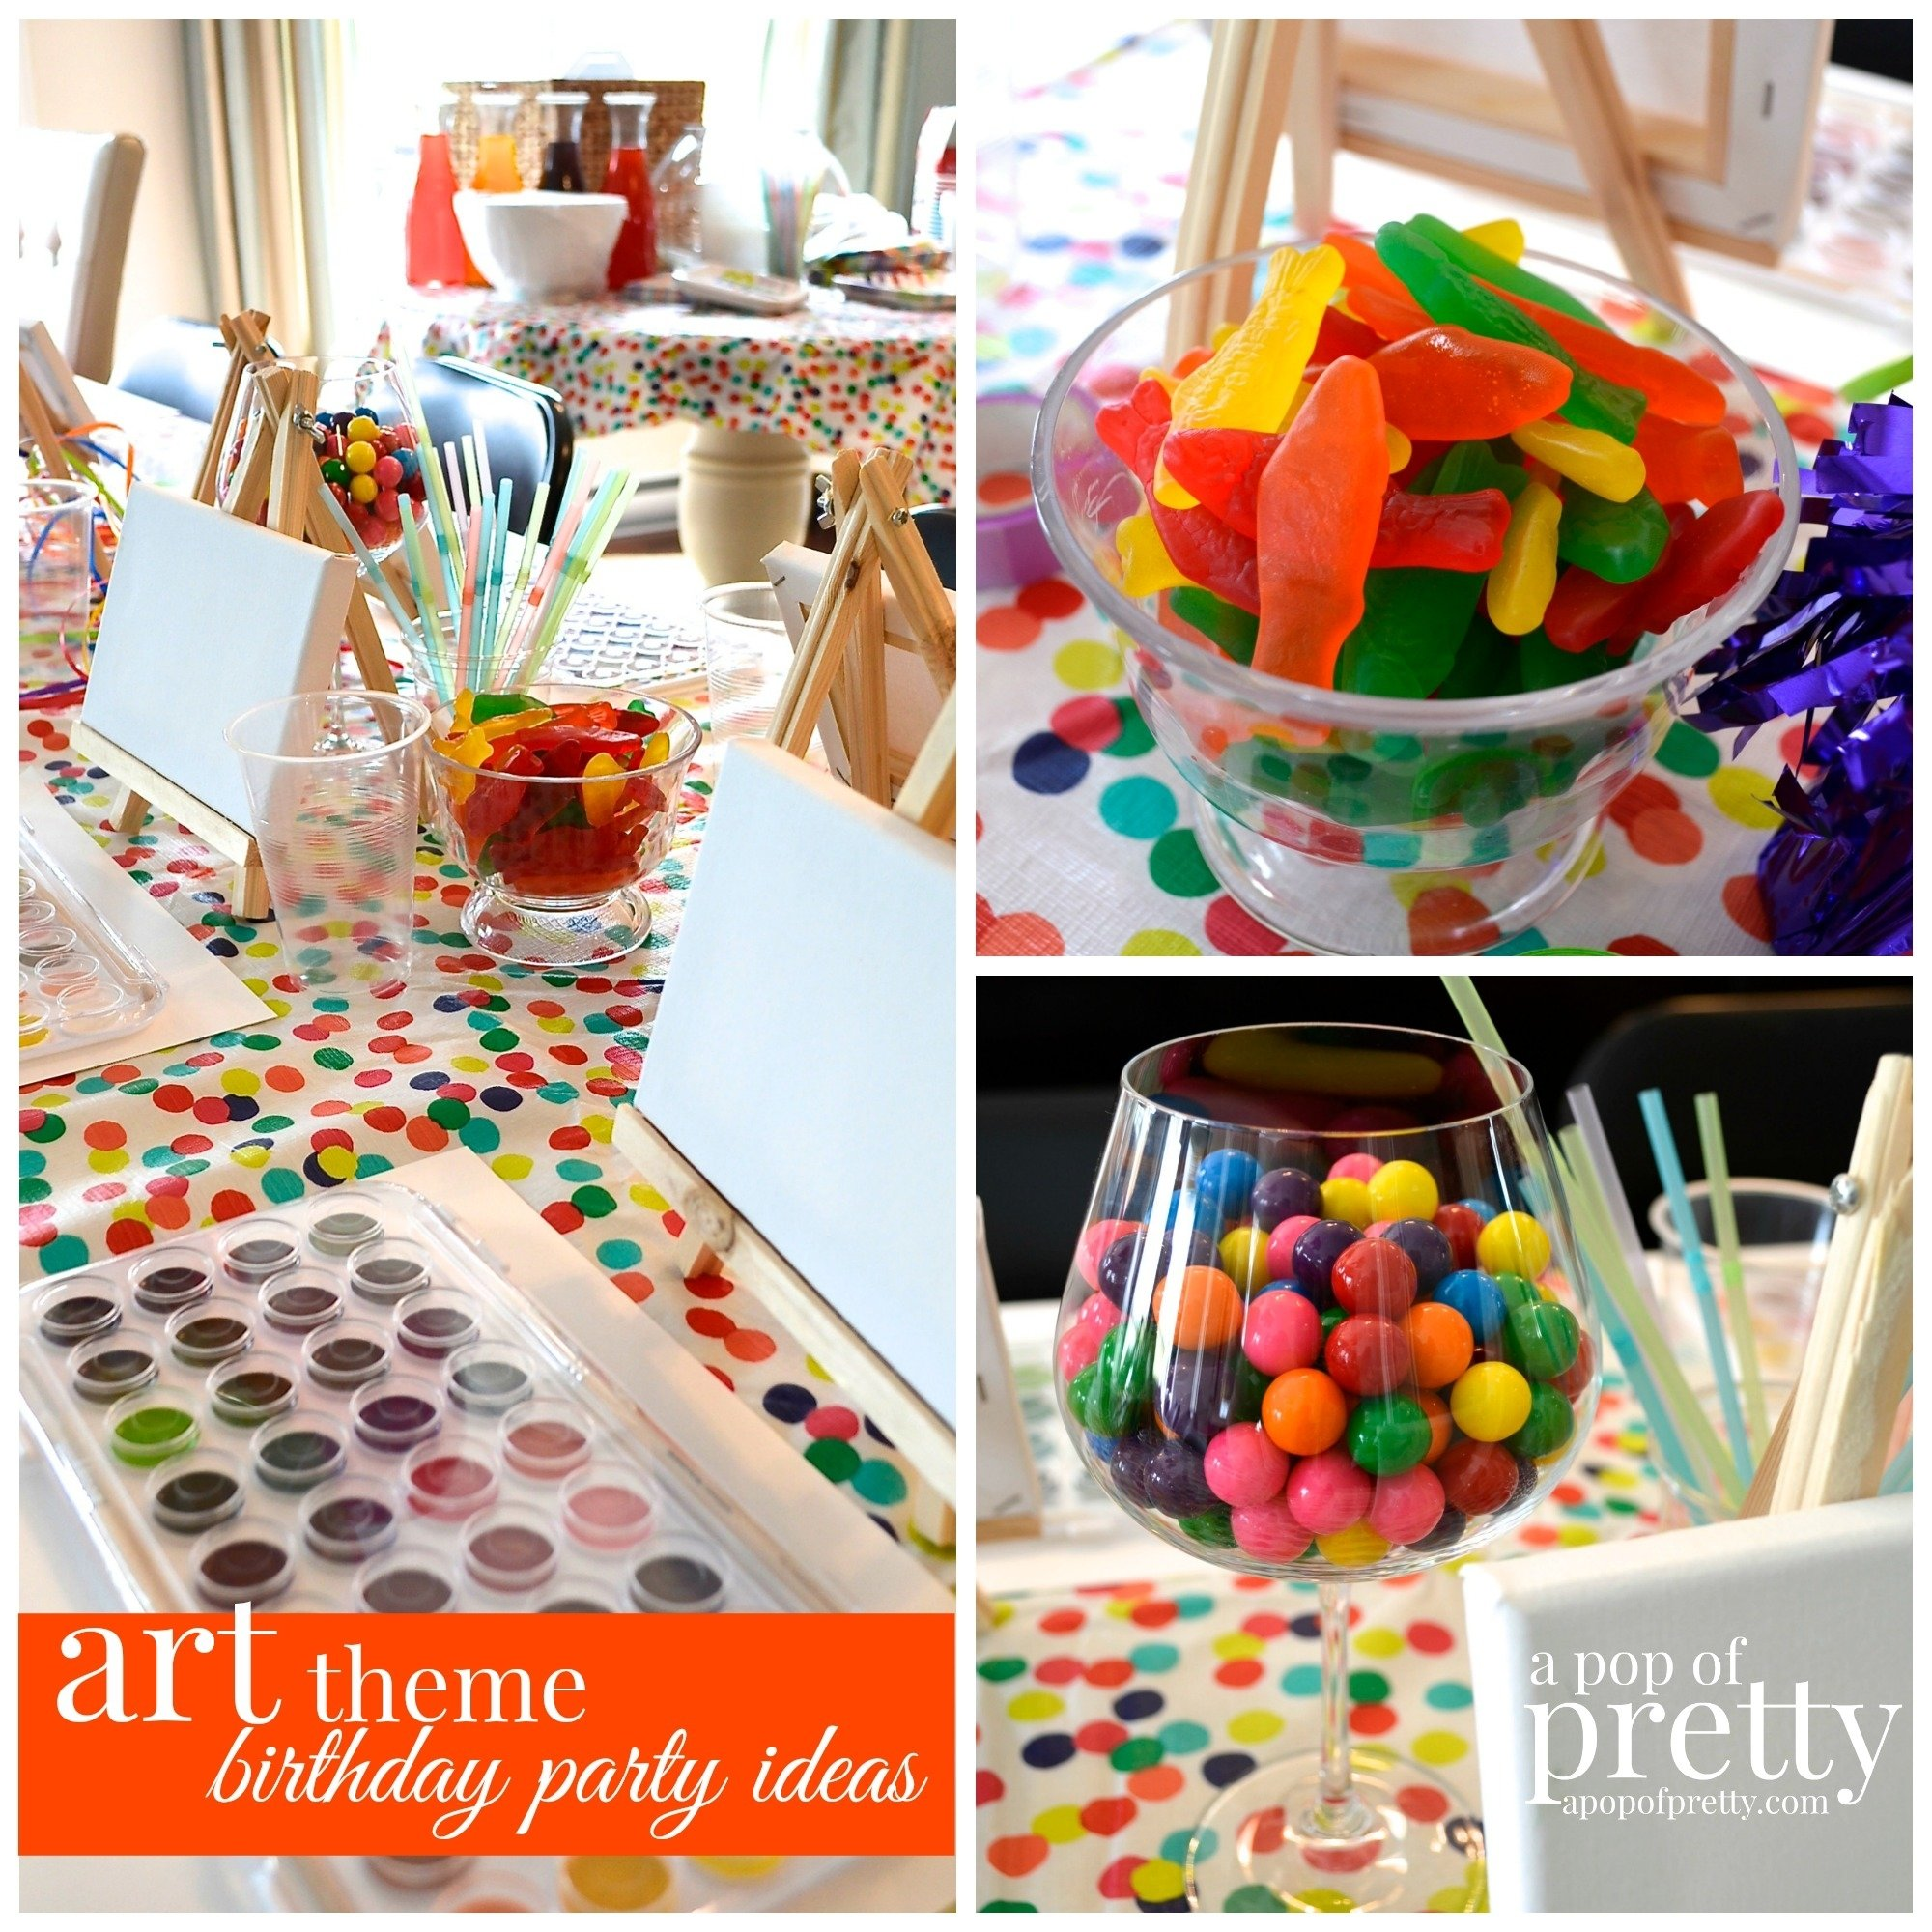 10 Fabulous Fun Party Ideas For Teens birthday ideas fun art theme party for girls art themes color 1 2021